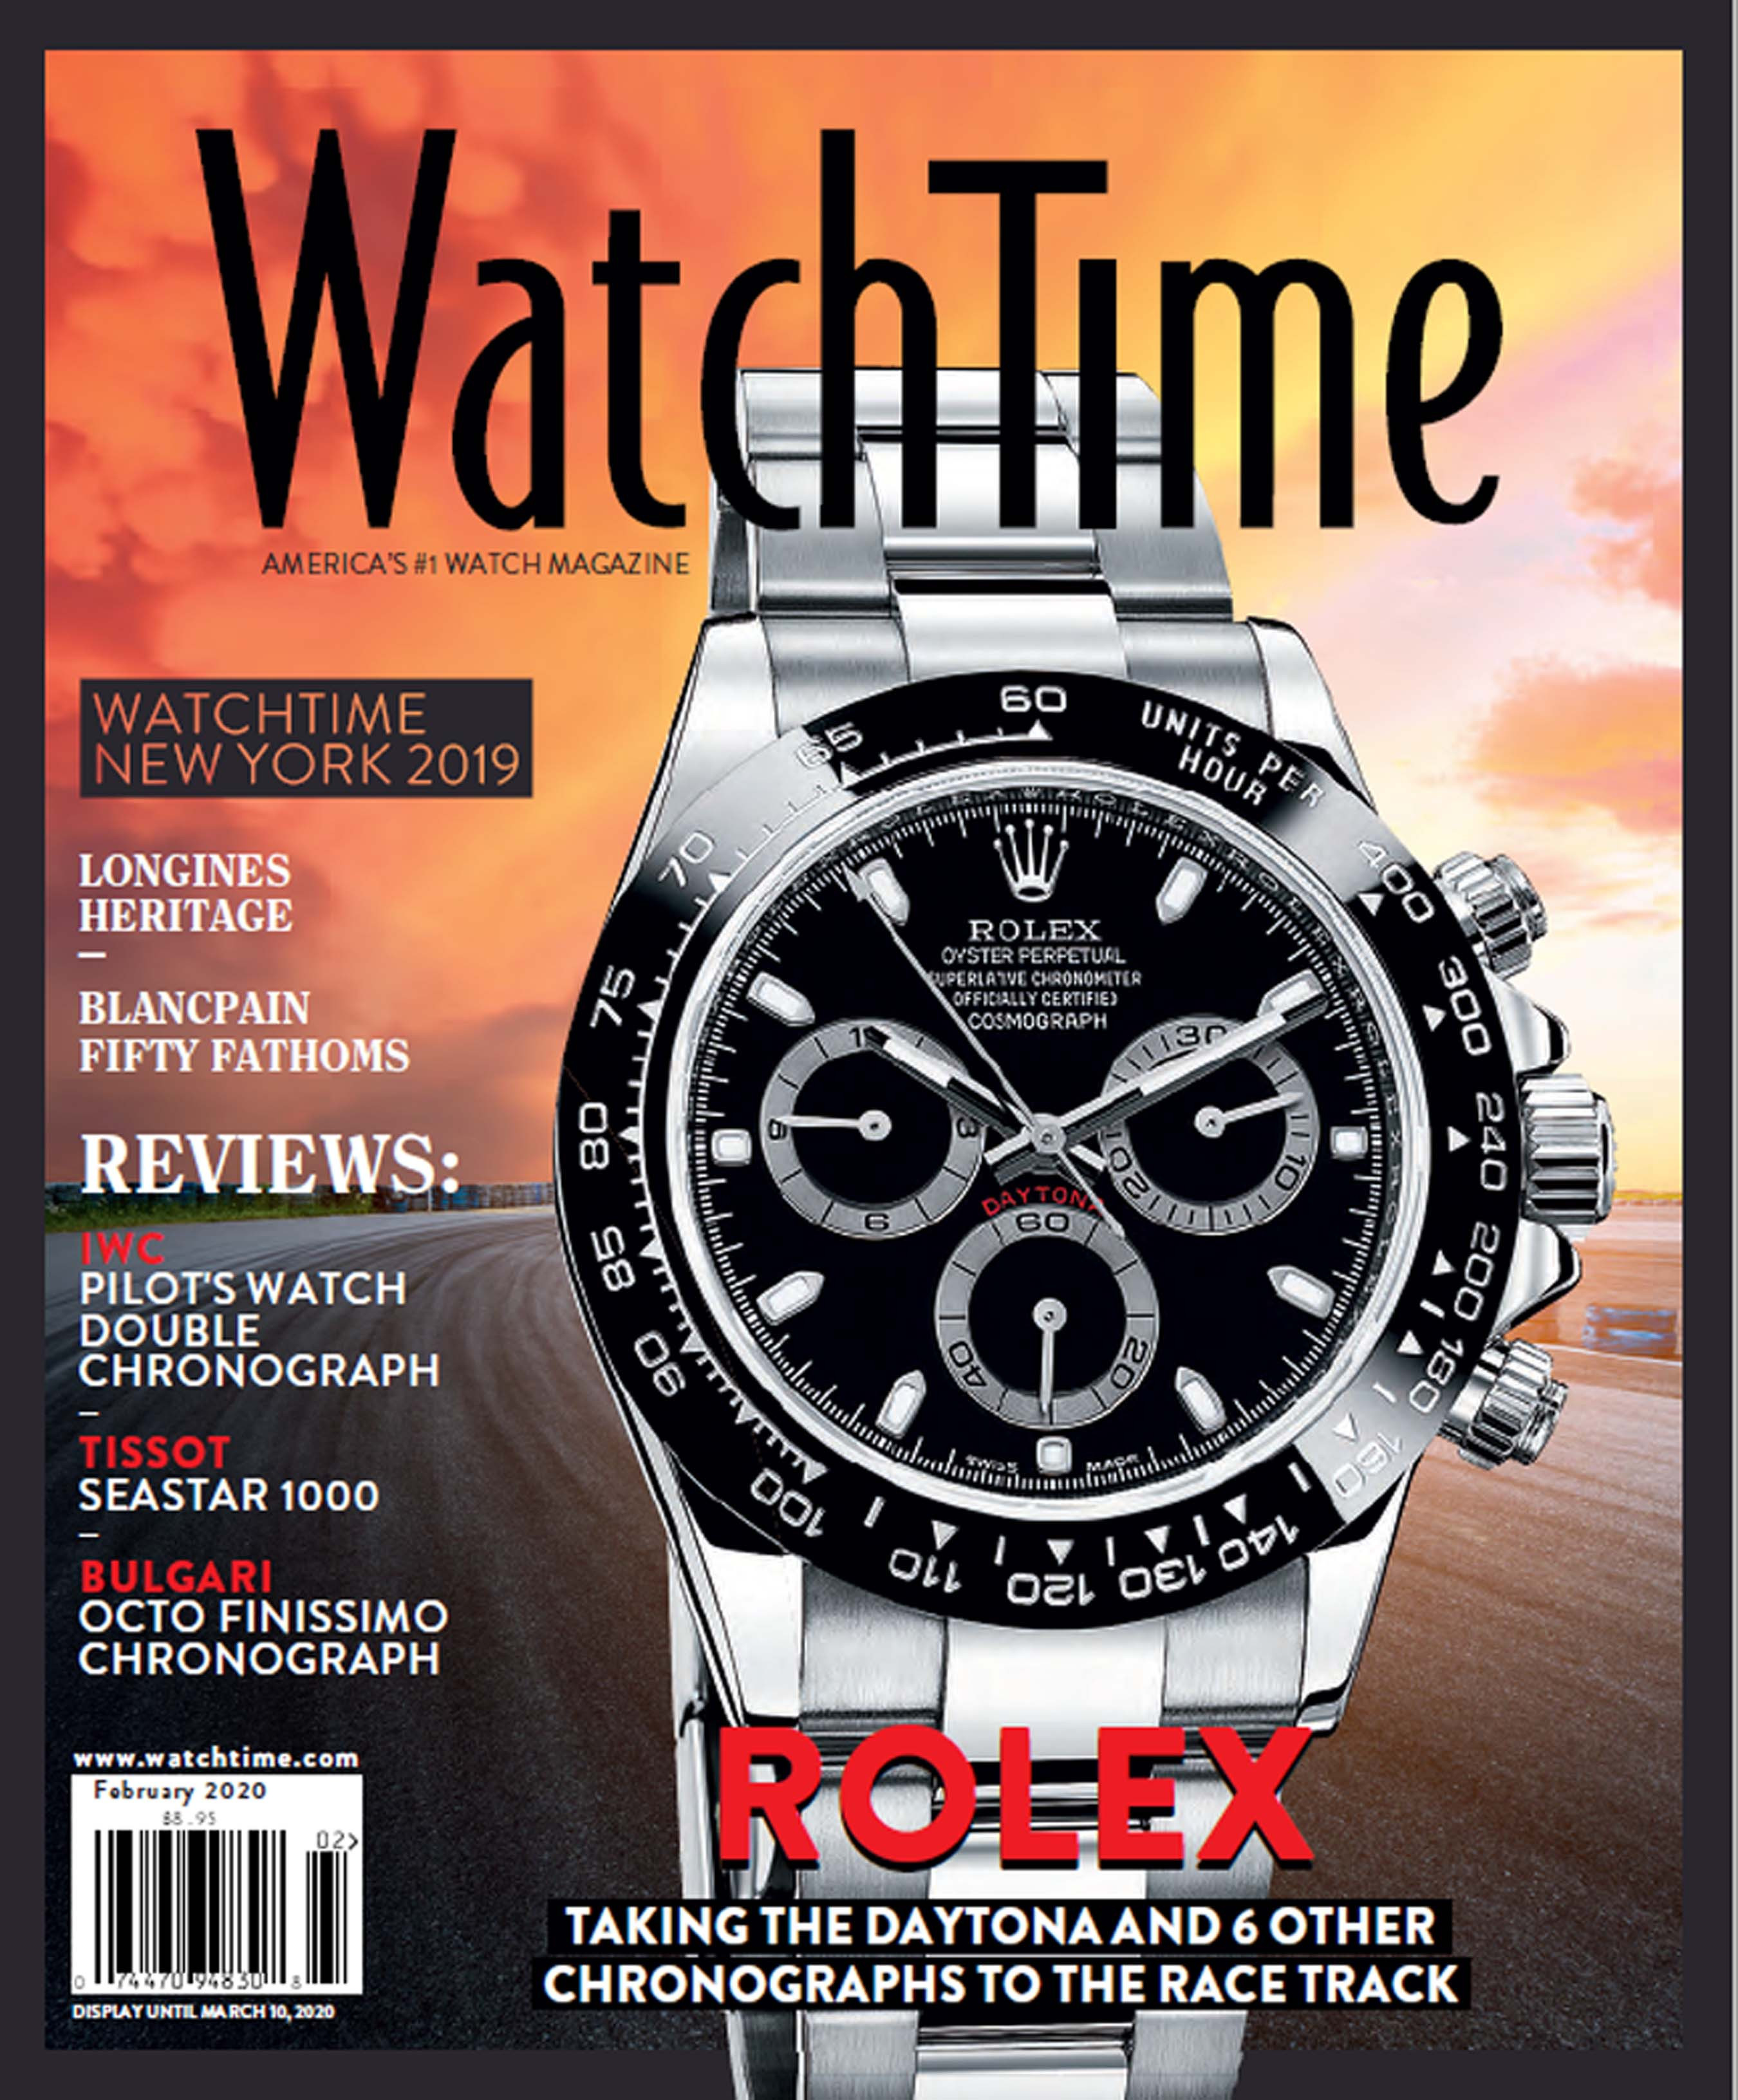 WatchTime February 2020